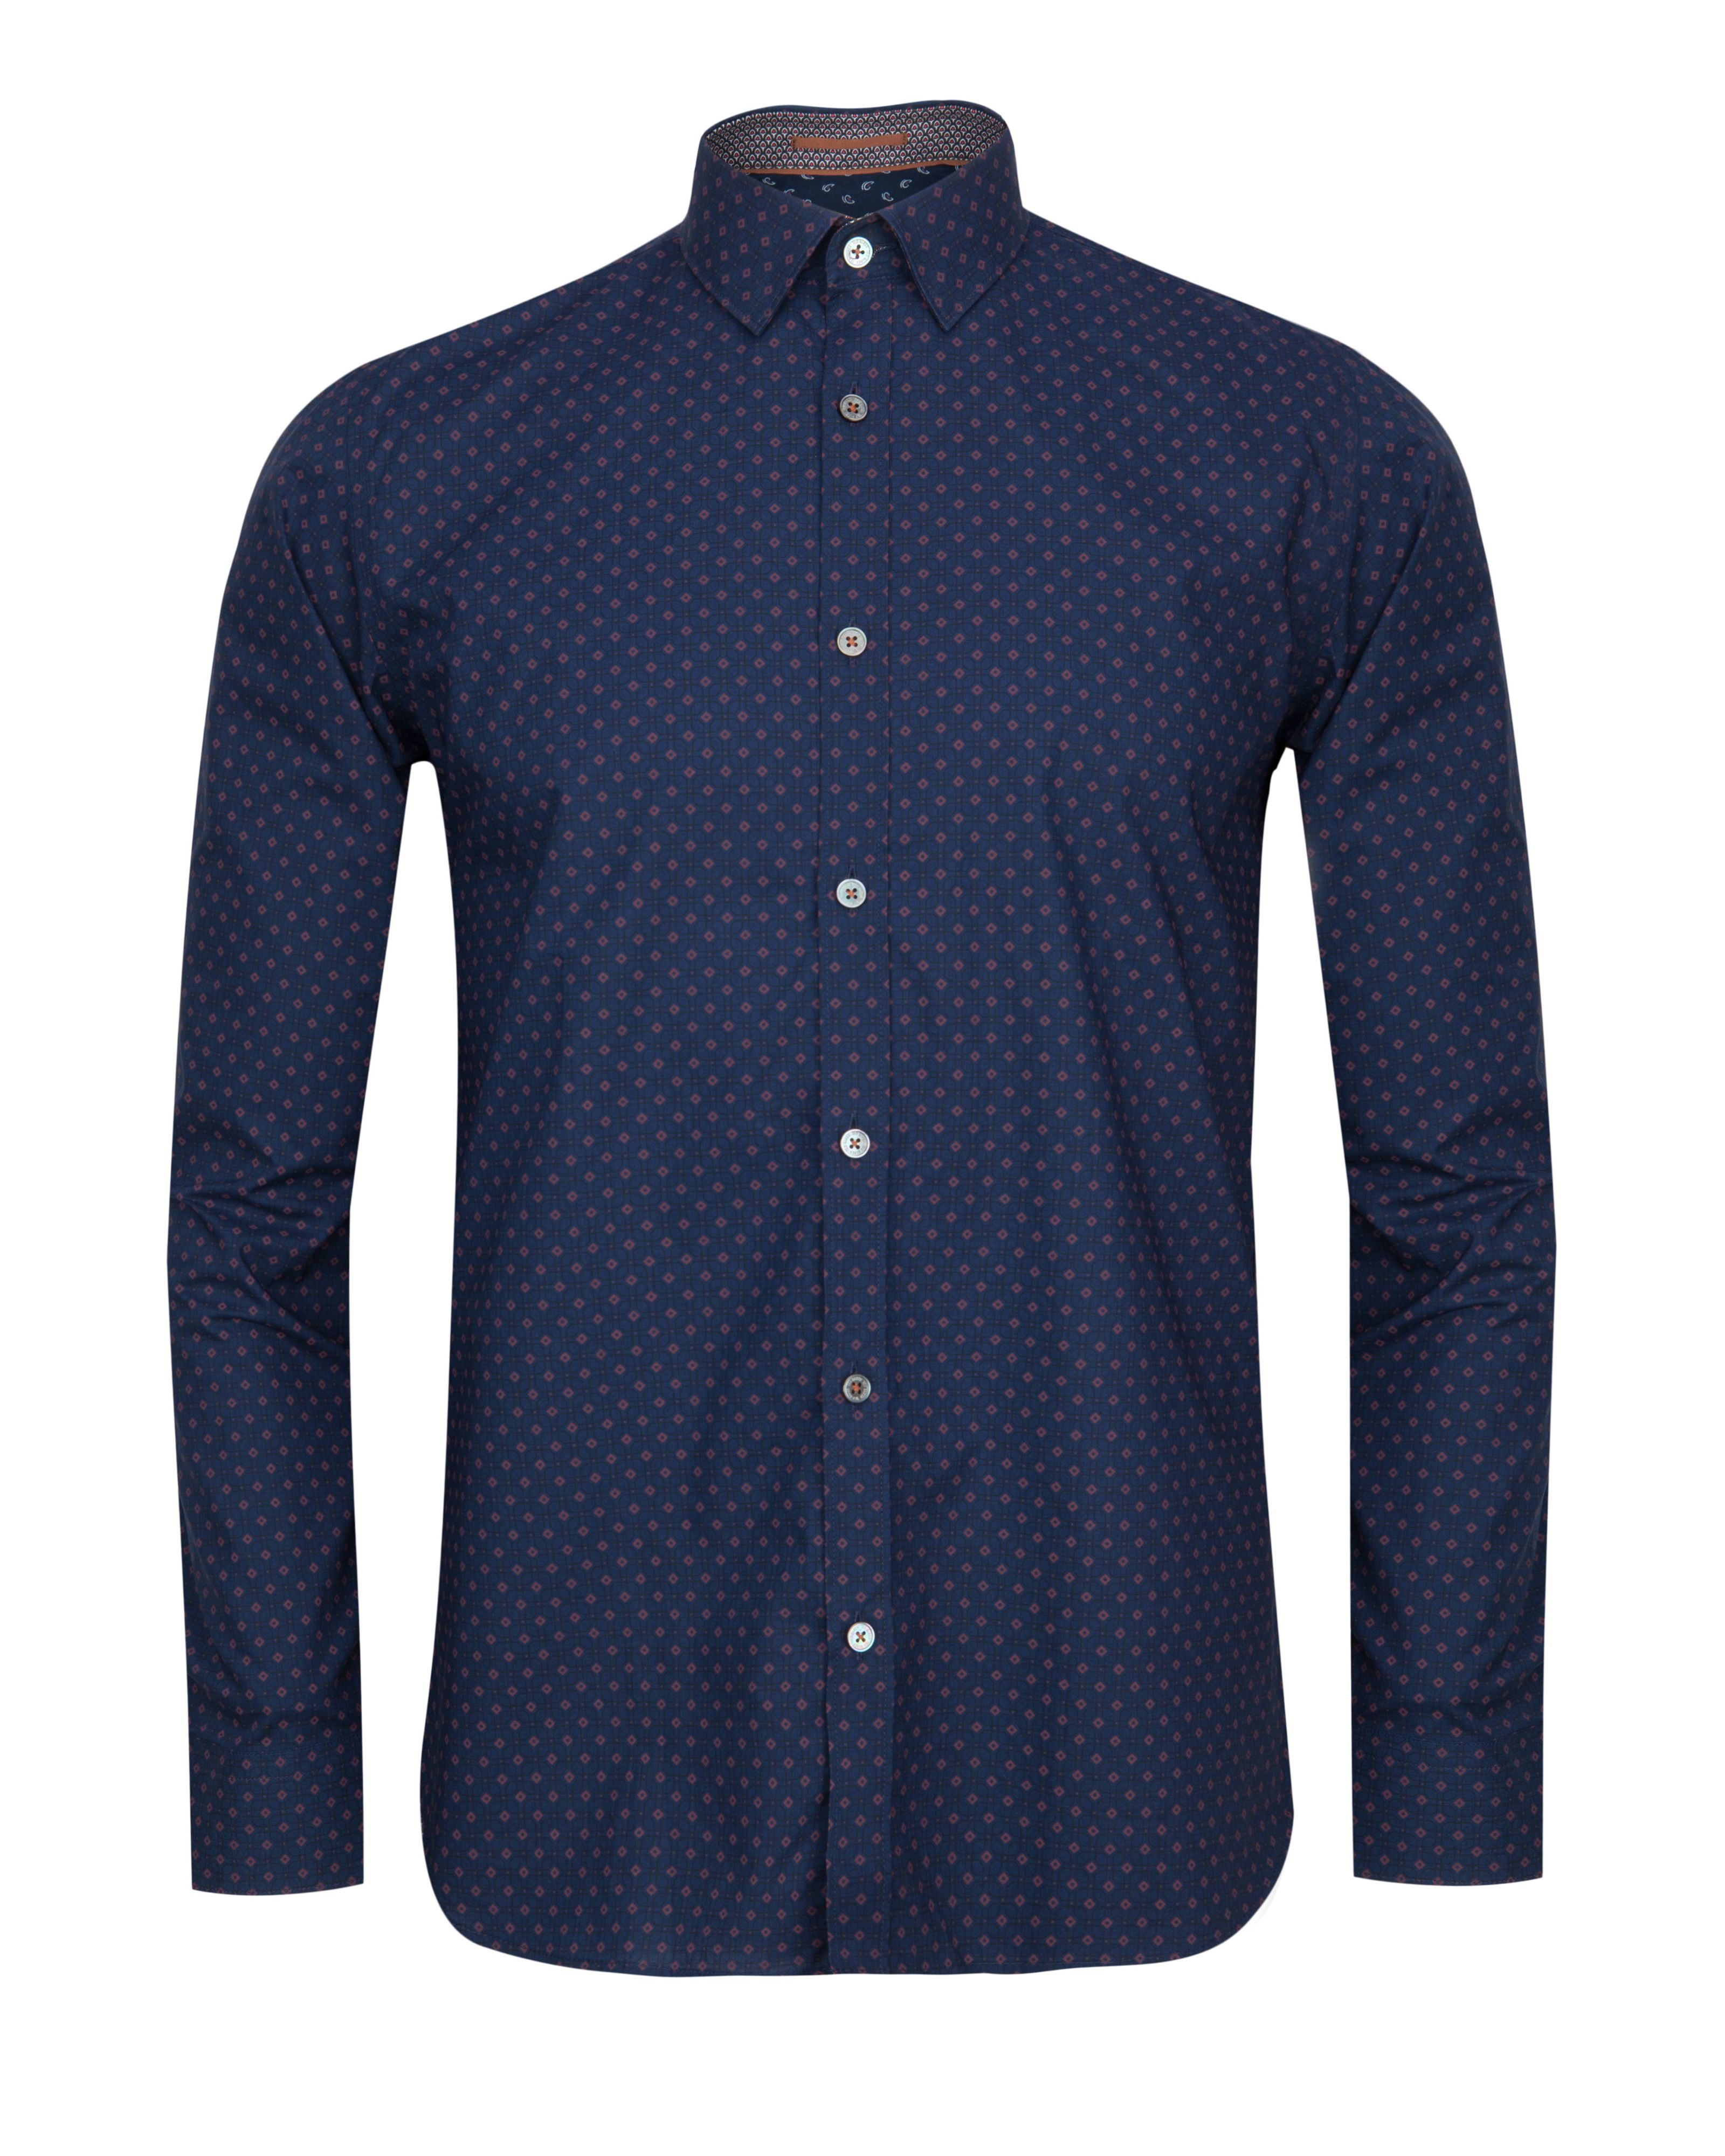 Ted baker coolkid printed shirt in blue for men lyst for Ted baker blue shirt